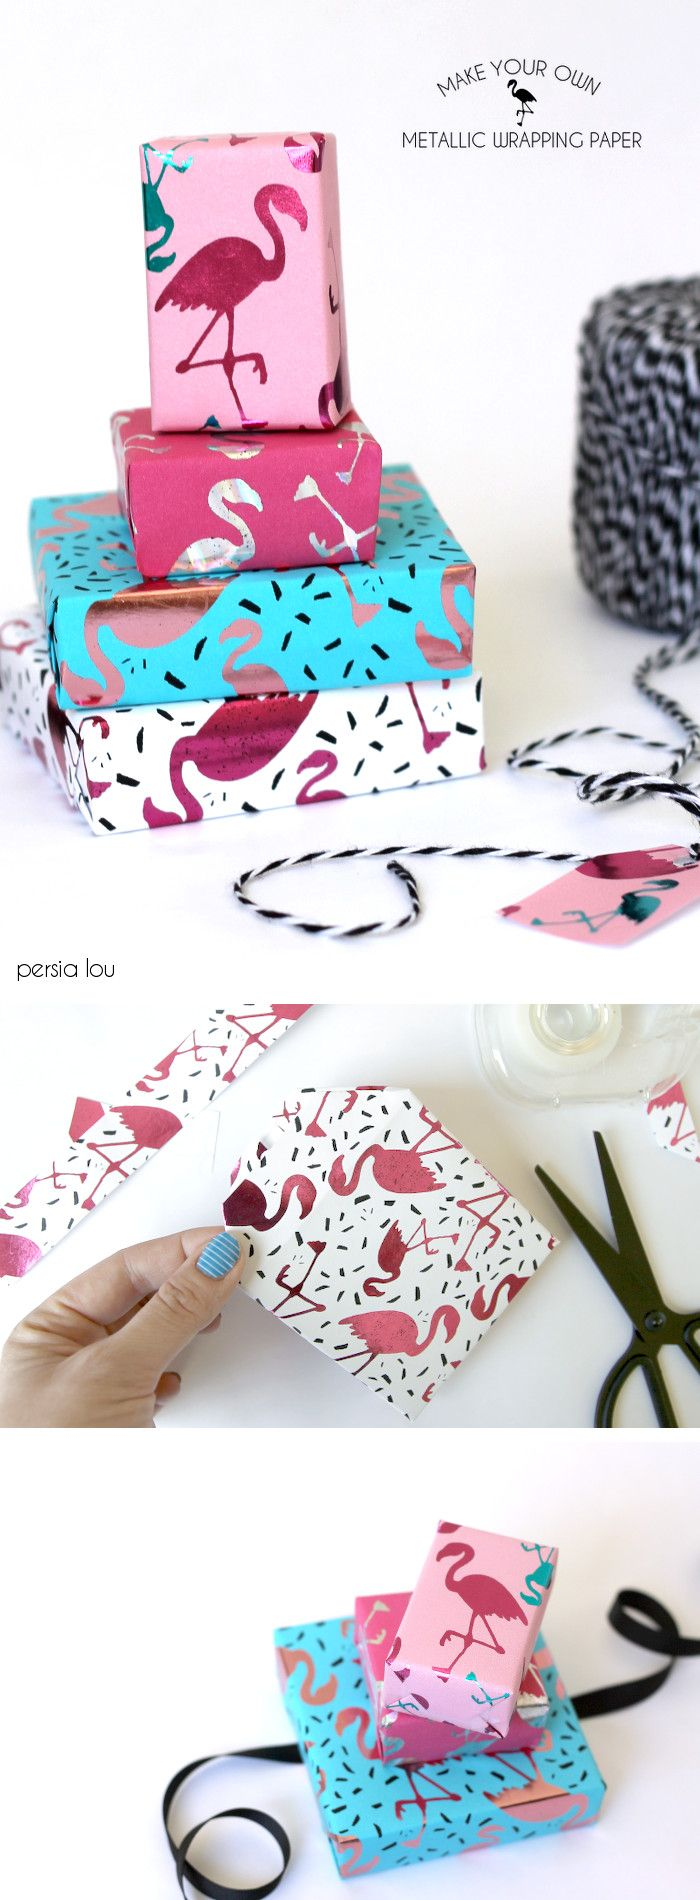 best ideas about s photos diy metallic wrapping paper